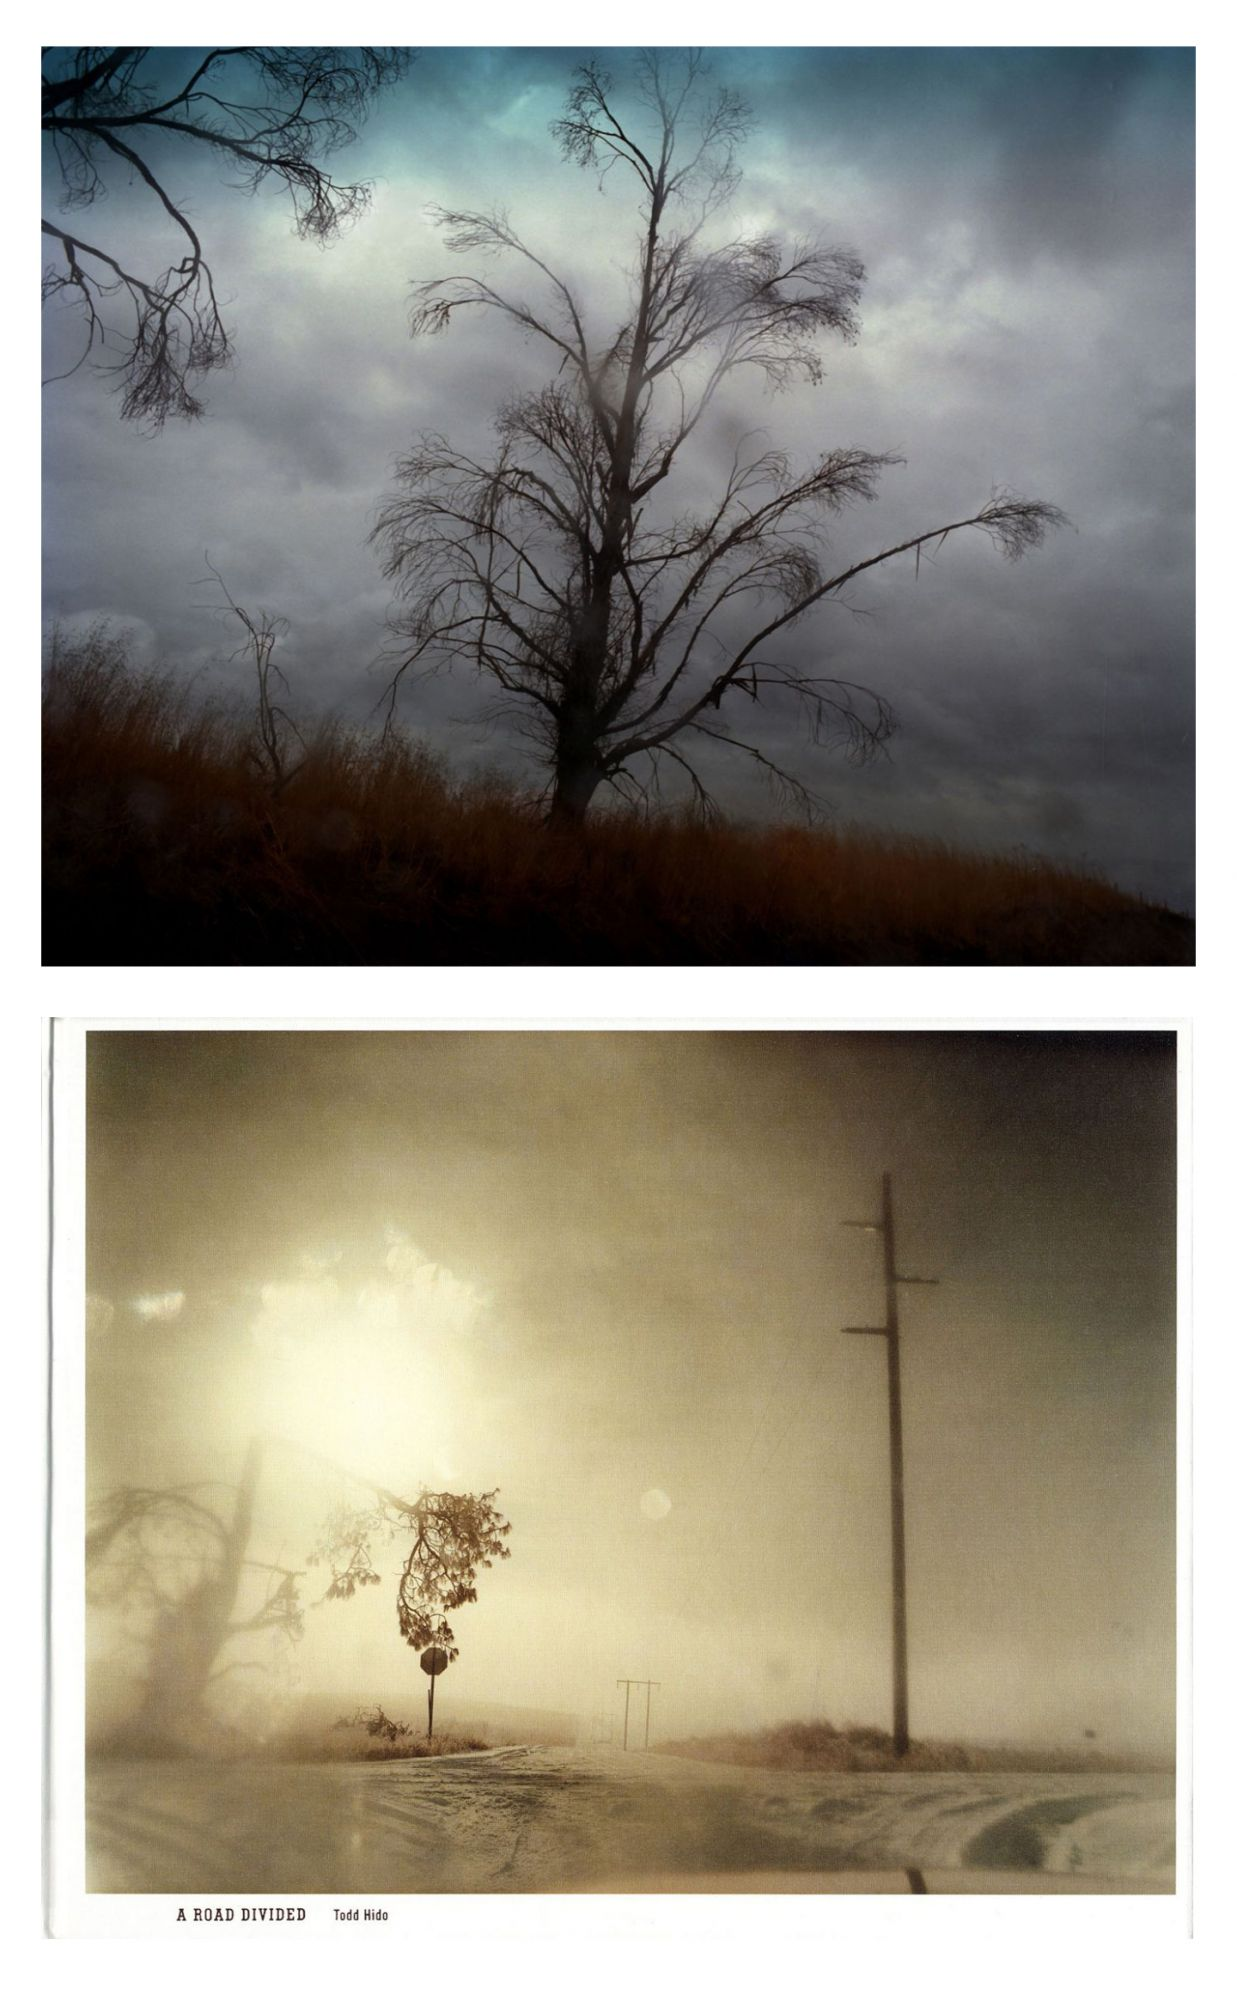 Todd Hido: A Road Divided, Special Limited Edition (with Type-C Print)